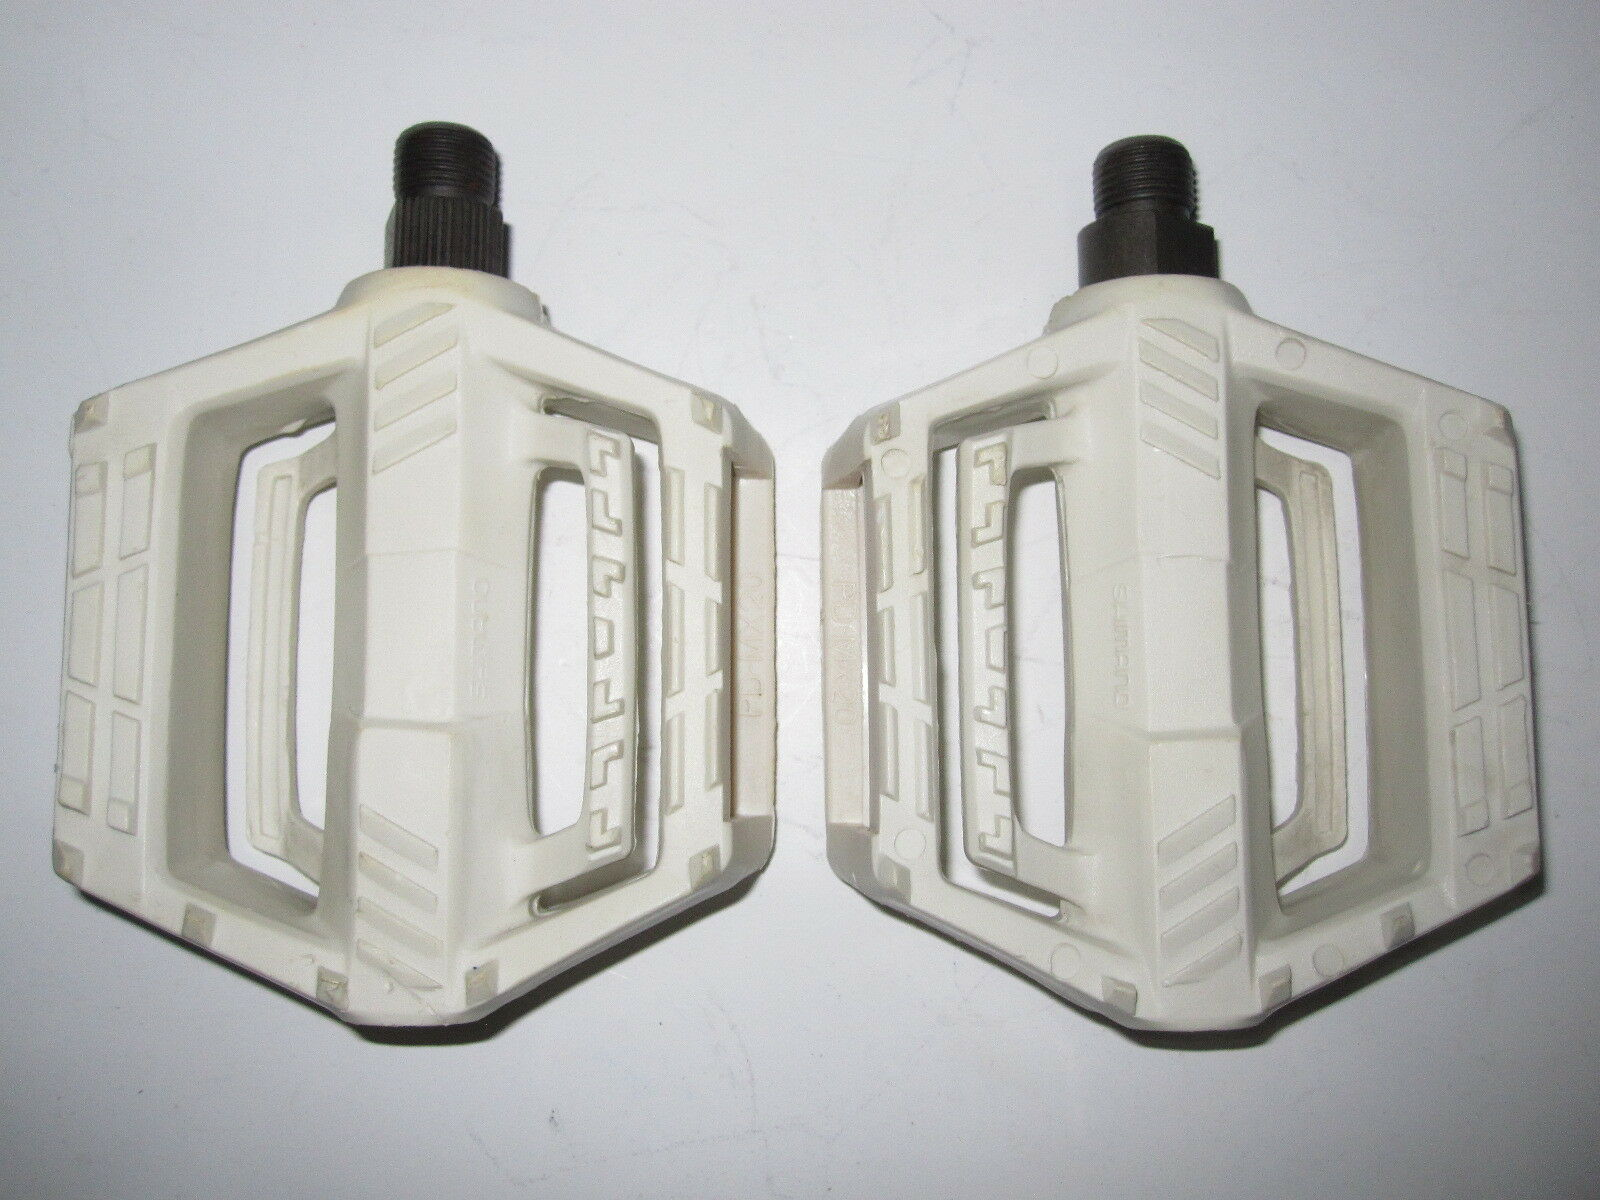 NOS  Shimano Vintage Pedals Model PD-MX20  best price